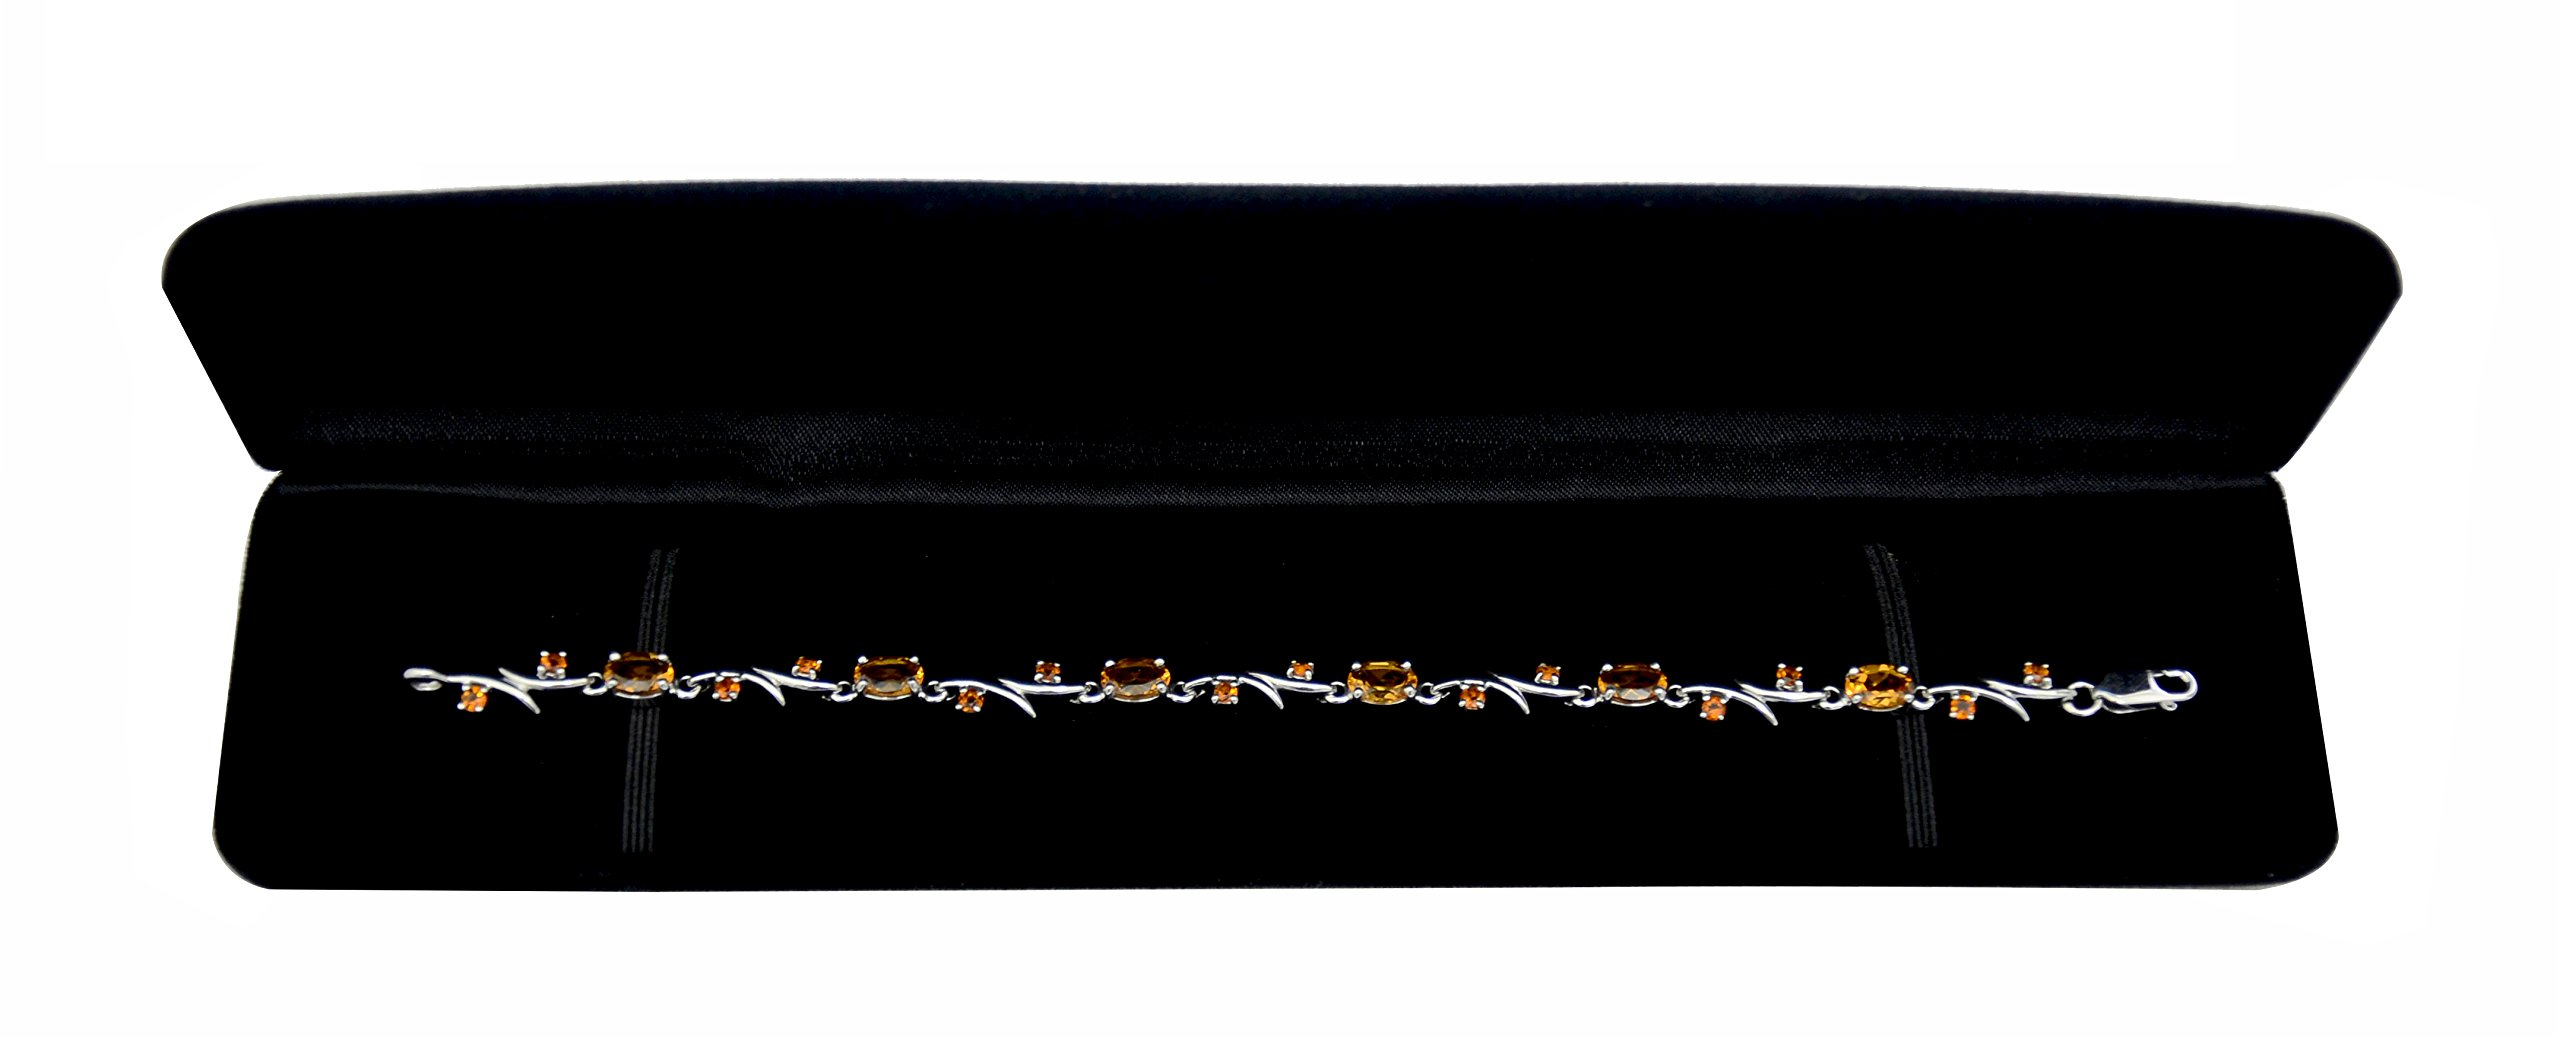 """RB Gems Sterling Silver 925 Tennis Bracelet Genuine Gemstone 5 Carats with Rhodium-Plated Finish, 7"""" Long (Citrine) by RB Gems (Image #3)"""